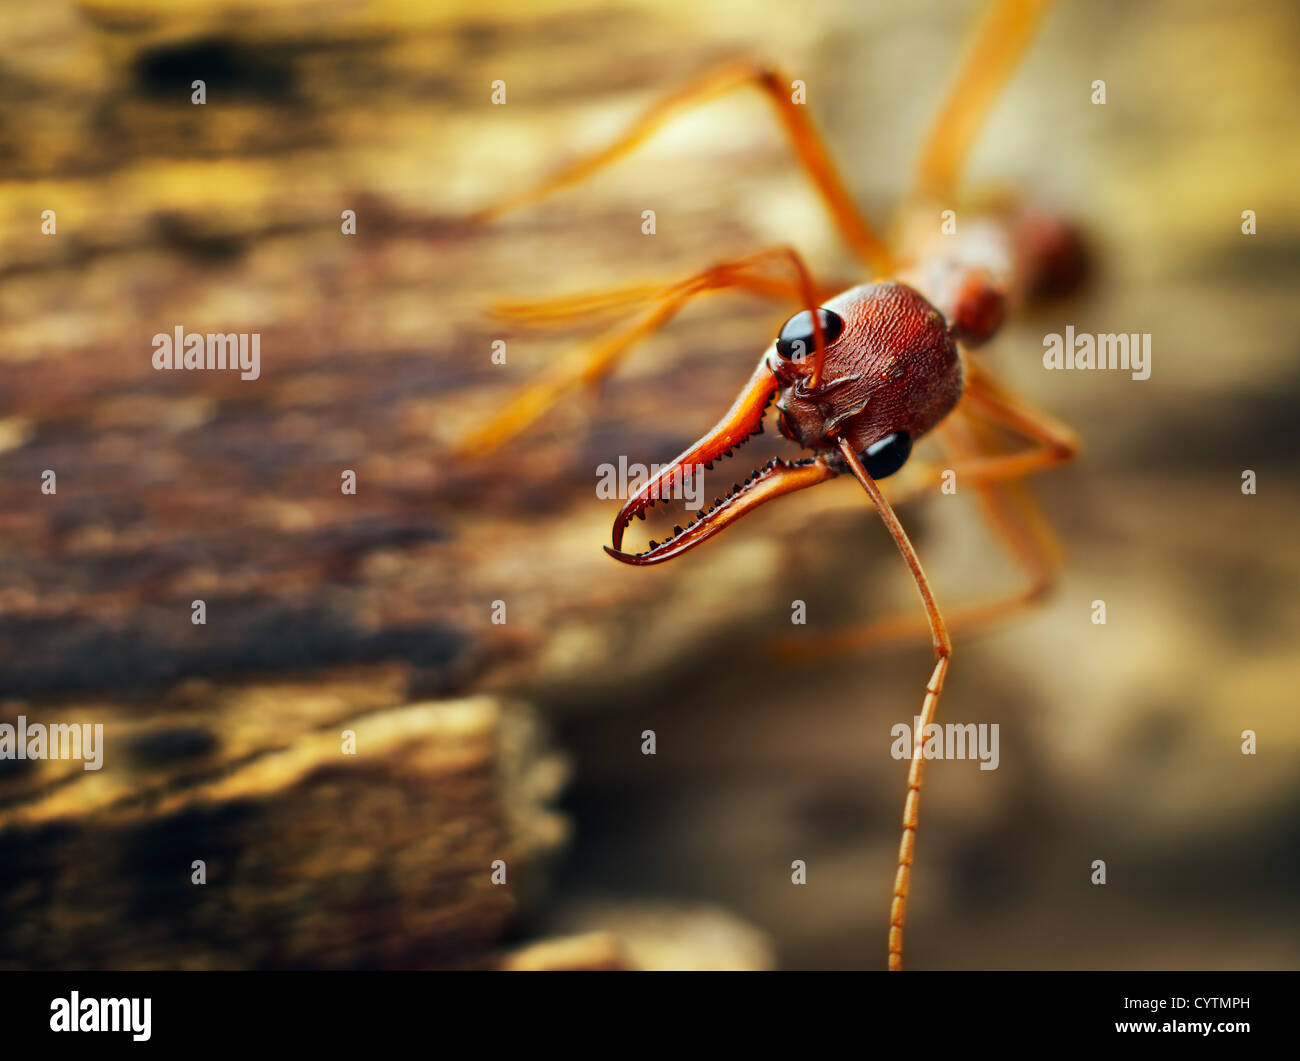 red ants attacking black ant stockfotos red ants. Black Bedroom Furniture Sets. Home Design Ideas